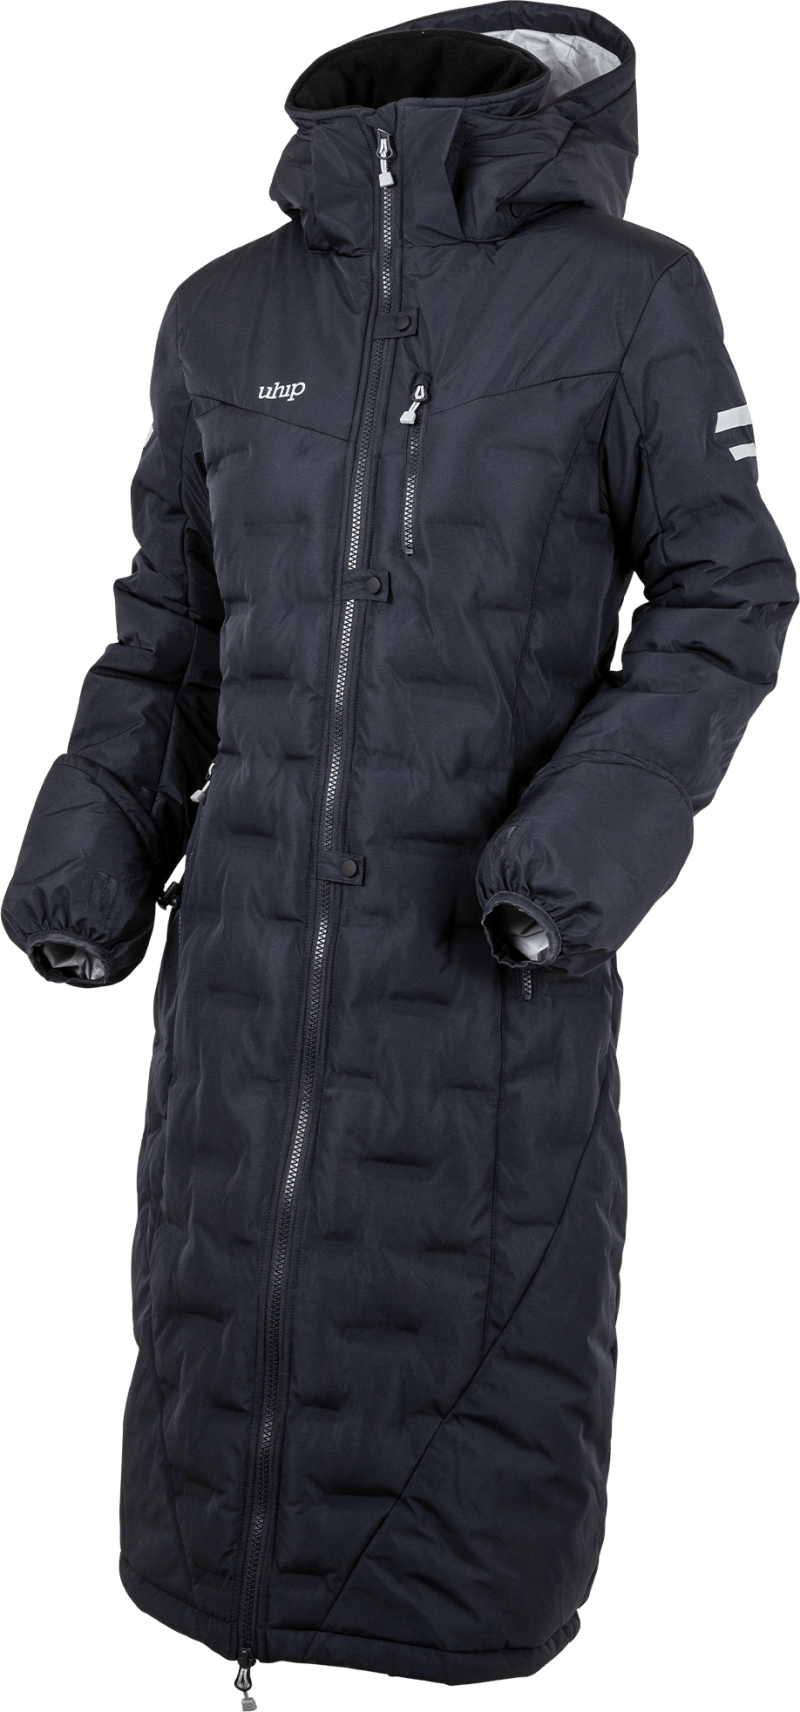 UHIP Ice Coat - Graphite